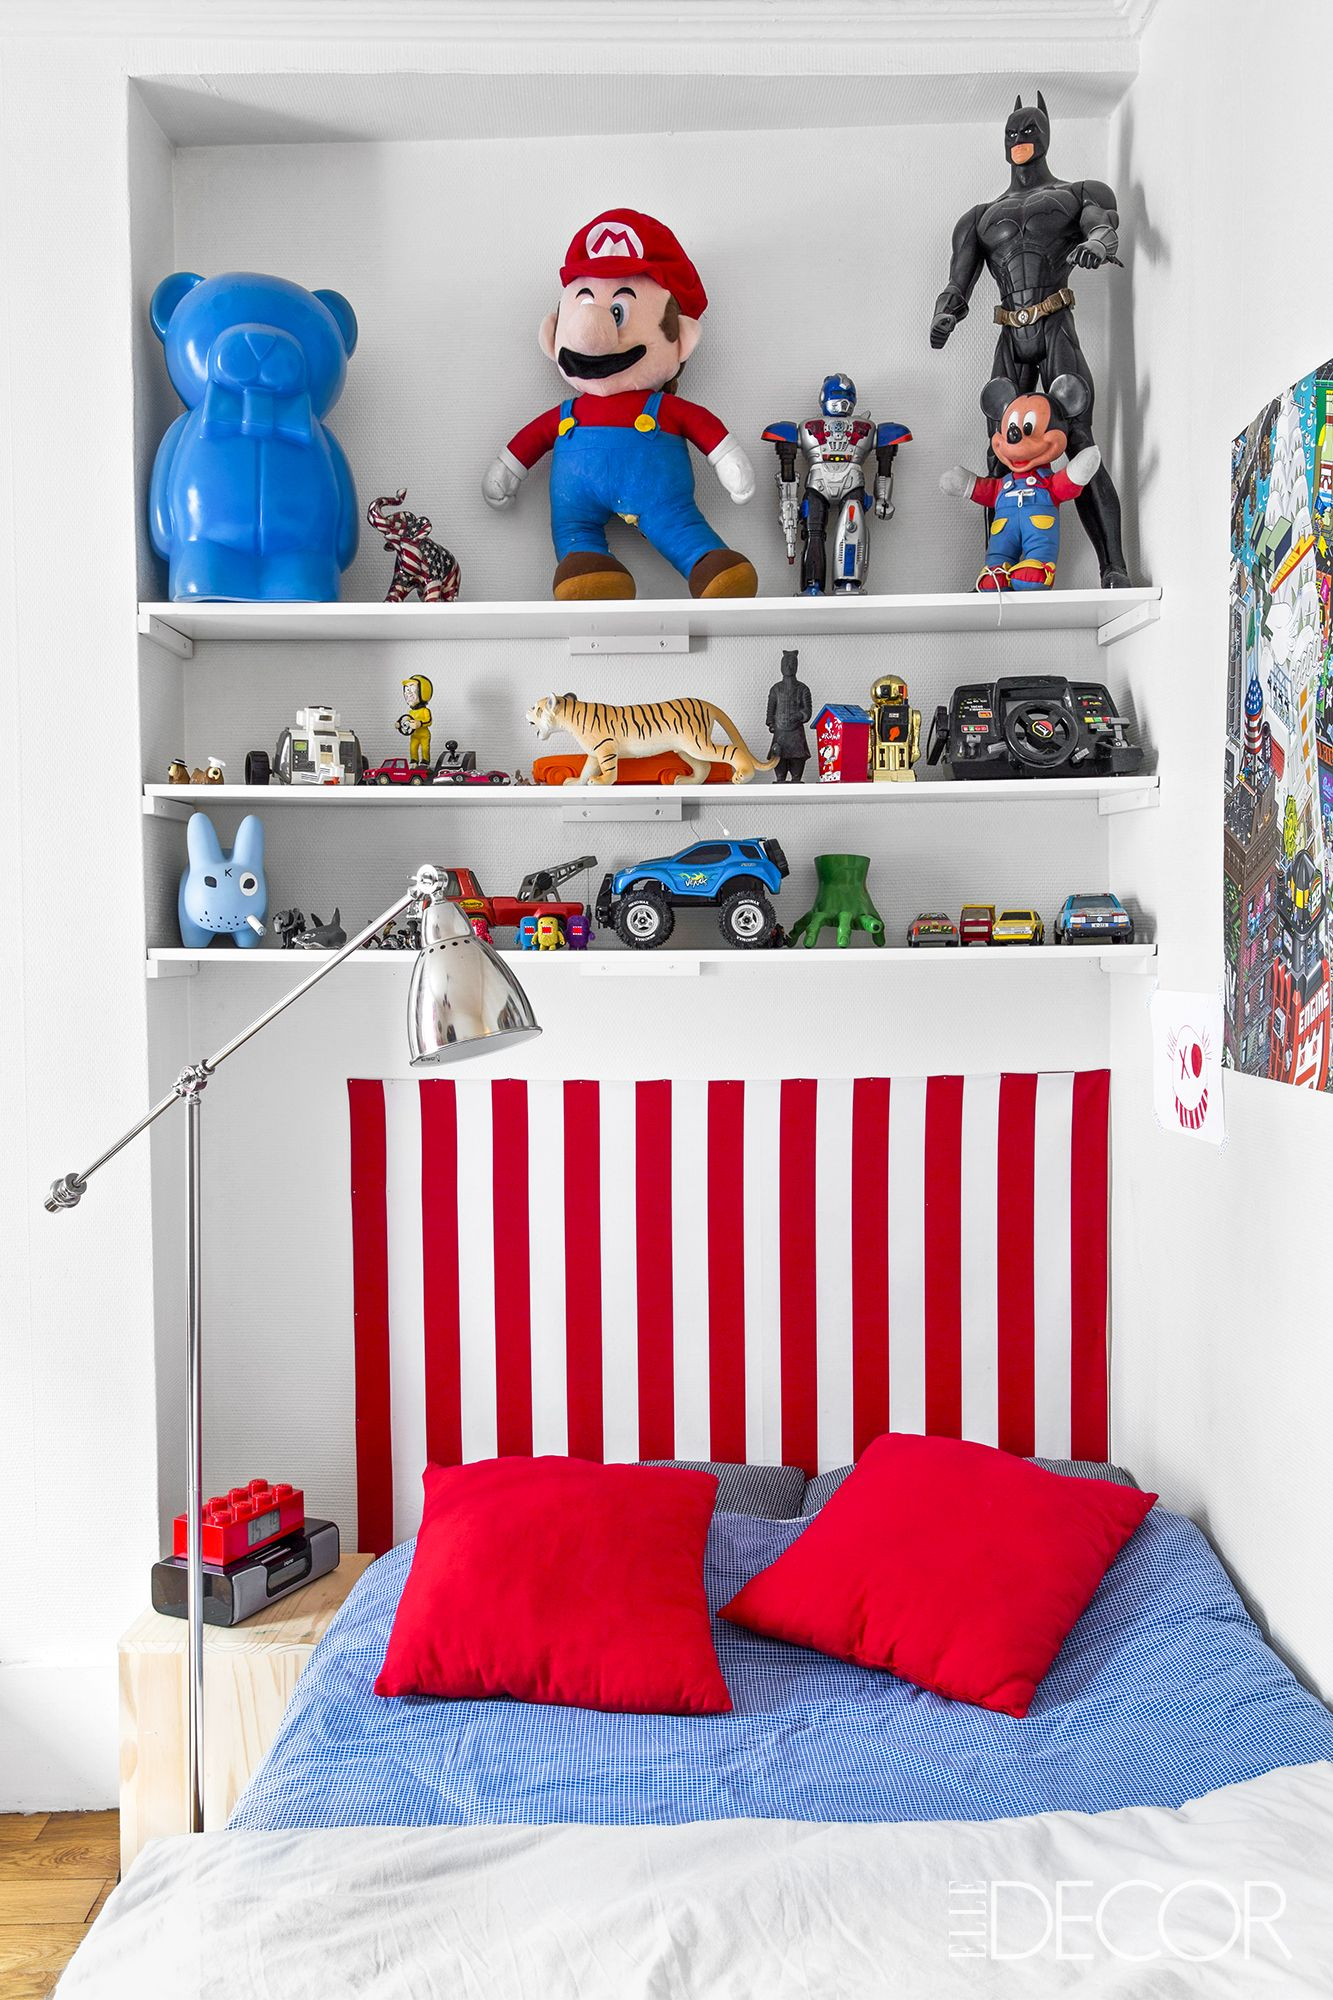 18 cool kids room decorating ideas kids room decor - Kids Room Wall Decor Ideas